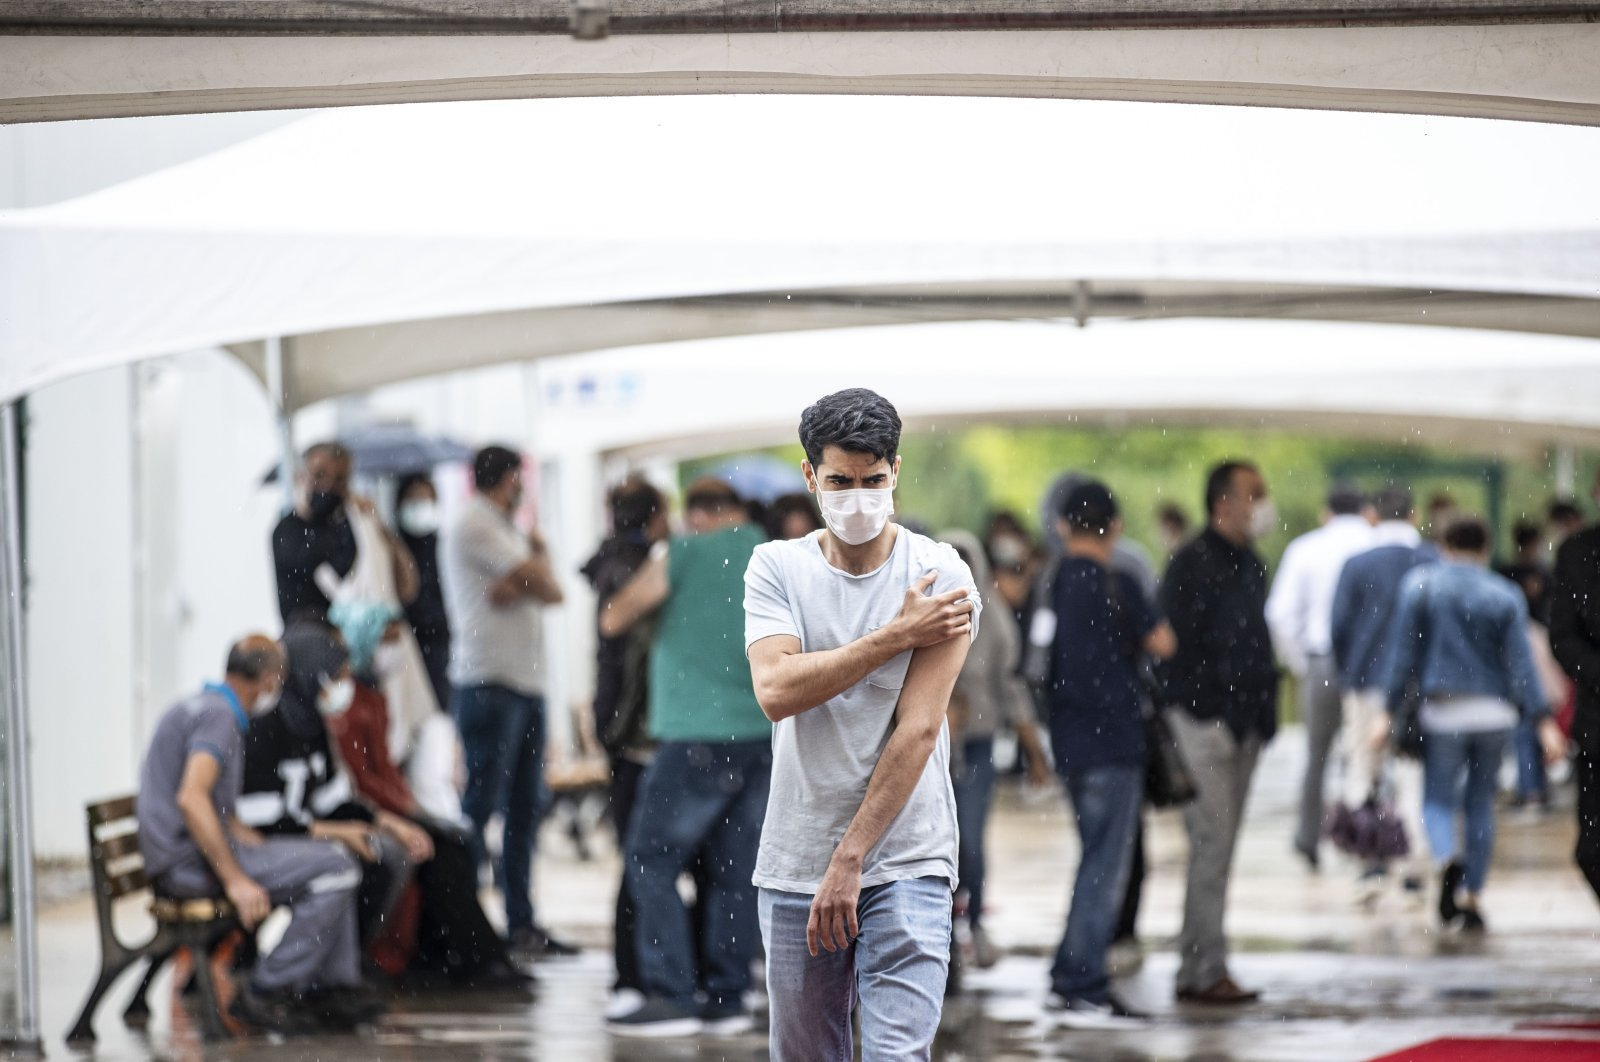 A man holds his upper arm after leaving a vaccination point at a hospital, in Istanbul, Turkey, June 14, 2021. (AA PHOTO)